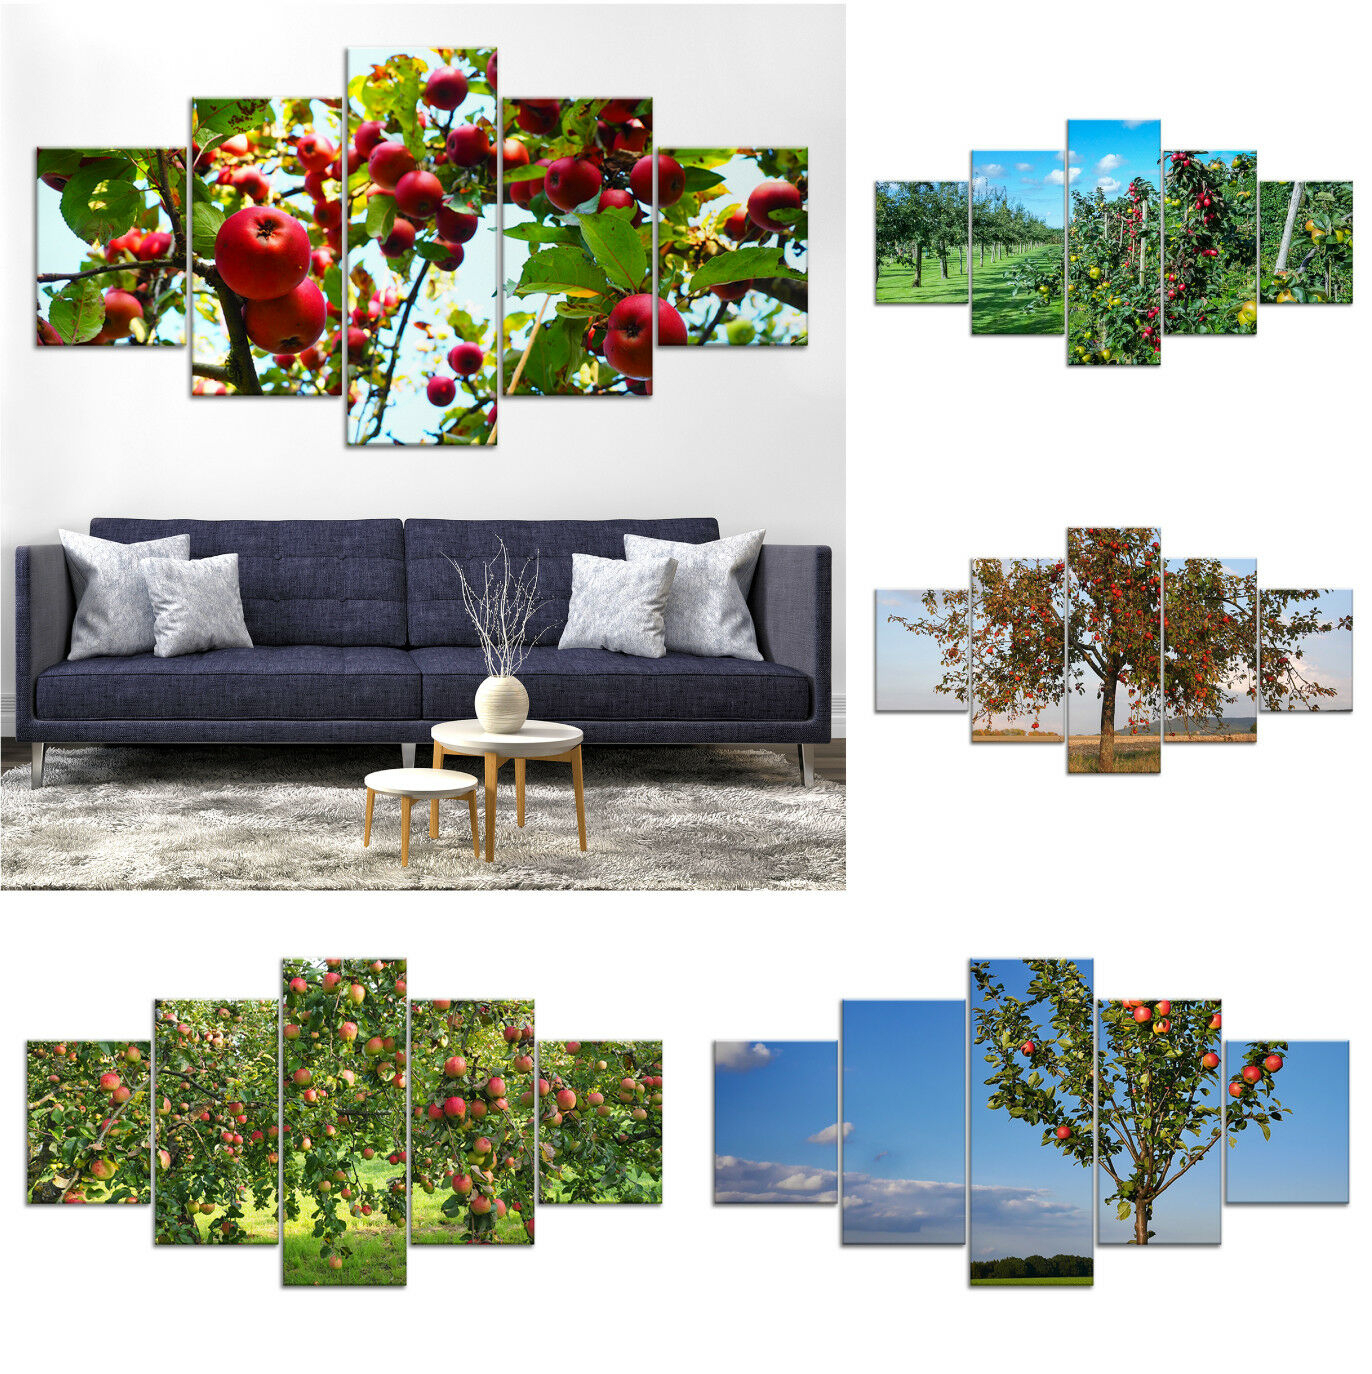 Apple Home 5Pcs Poster Art Wall Decor Framed Painting Print Inside 1 Piece Ortie Panel Wall Decor (View 8 of 30)